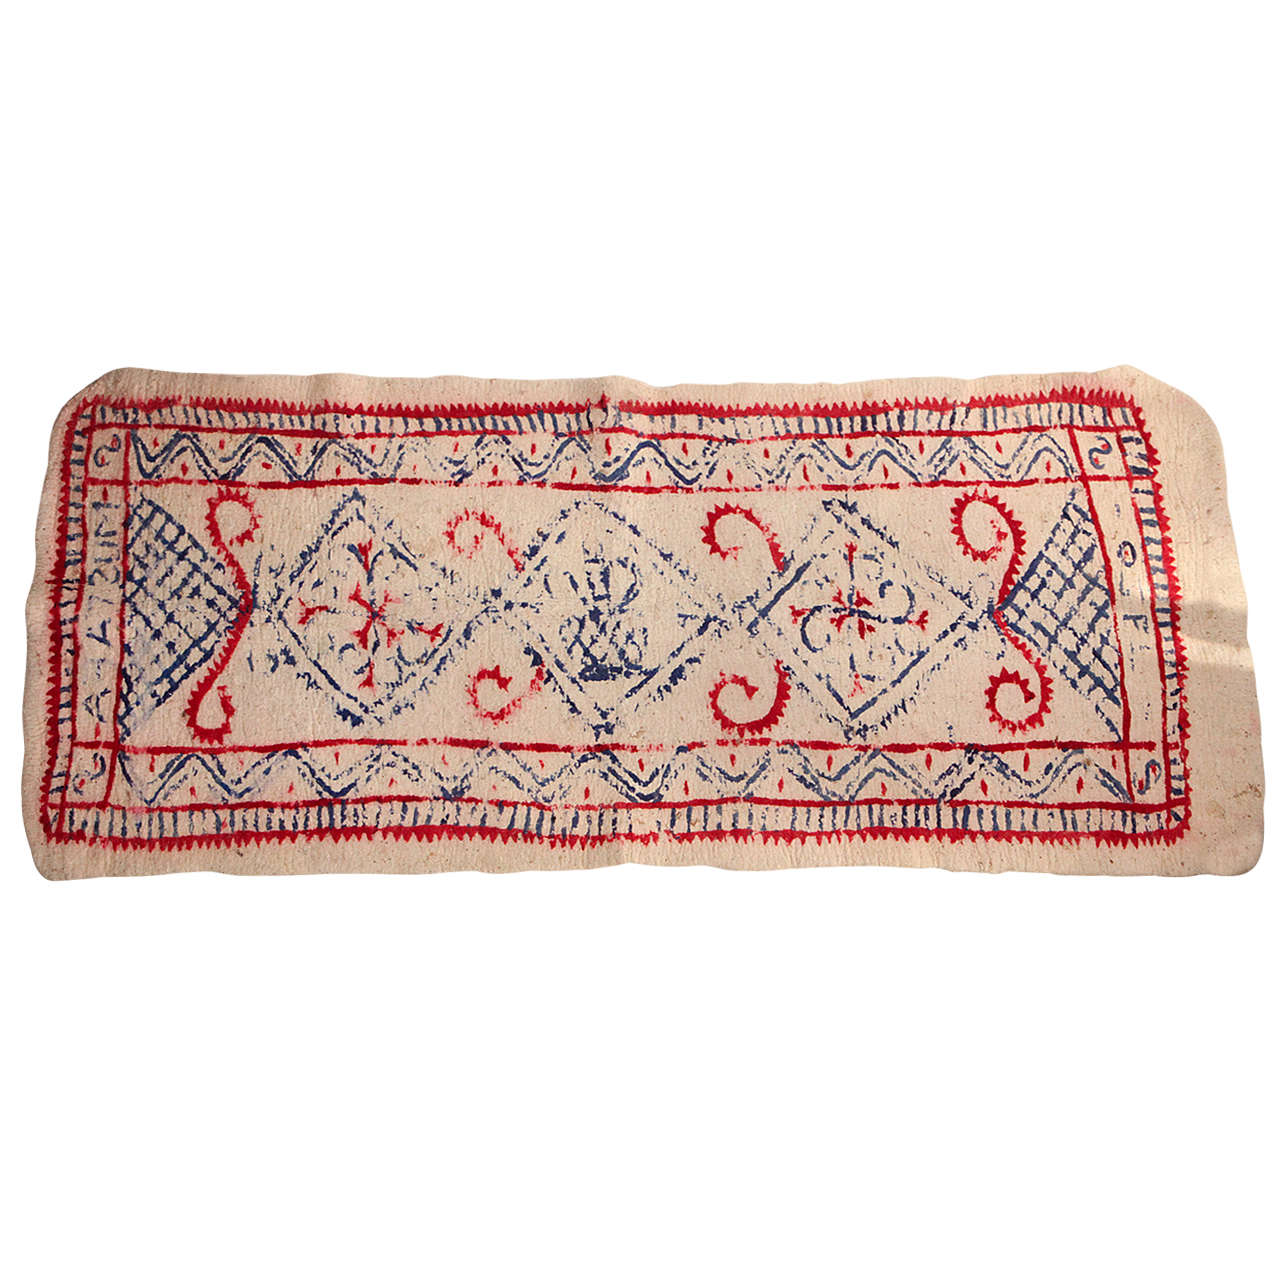 French Felt Cream Colored Rug With Hand Painted Red, Blue